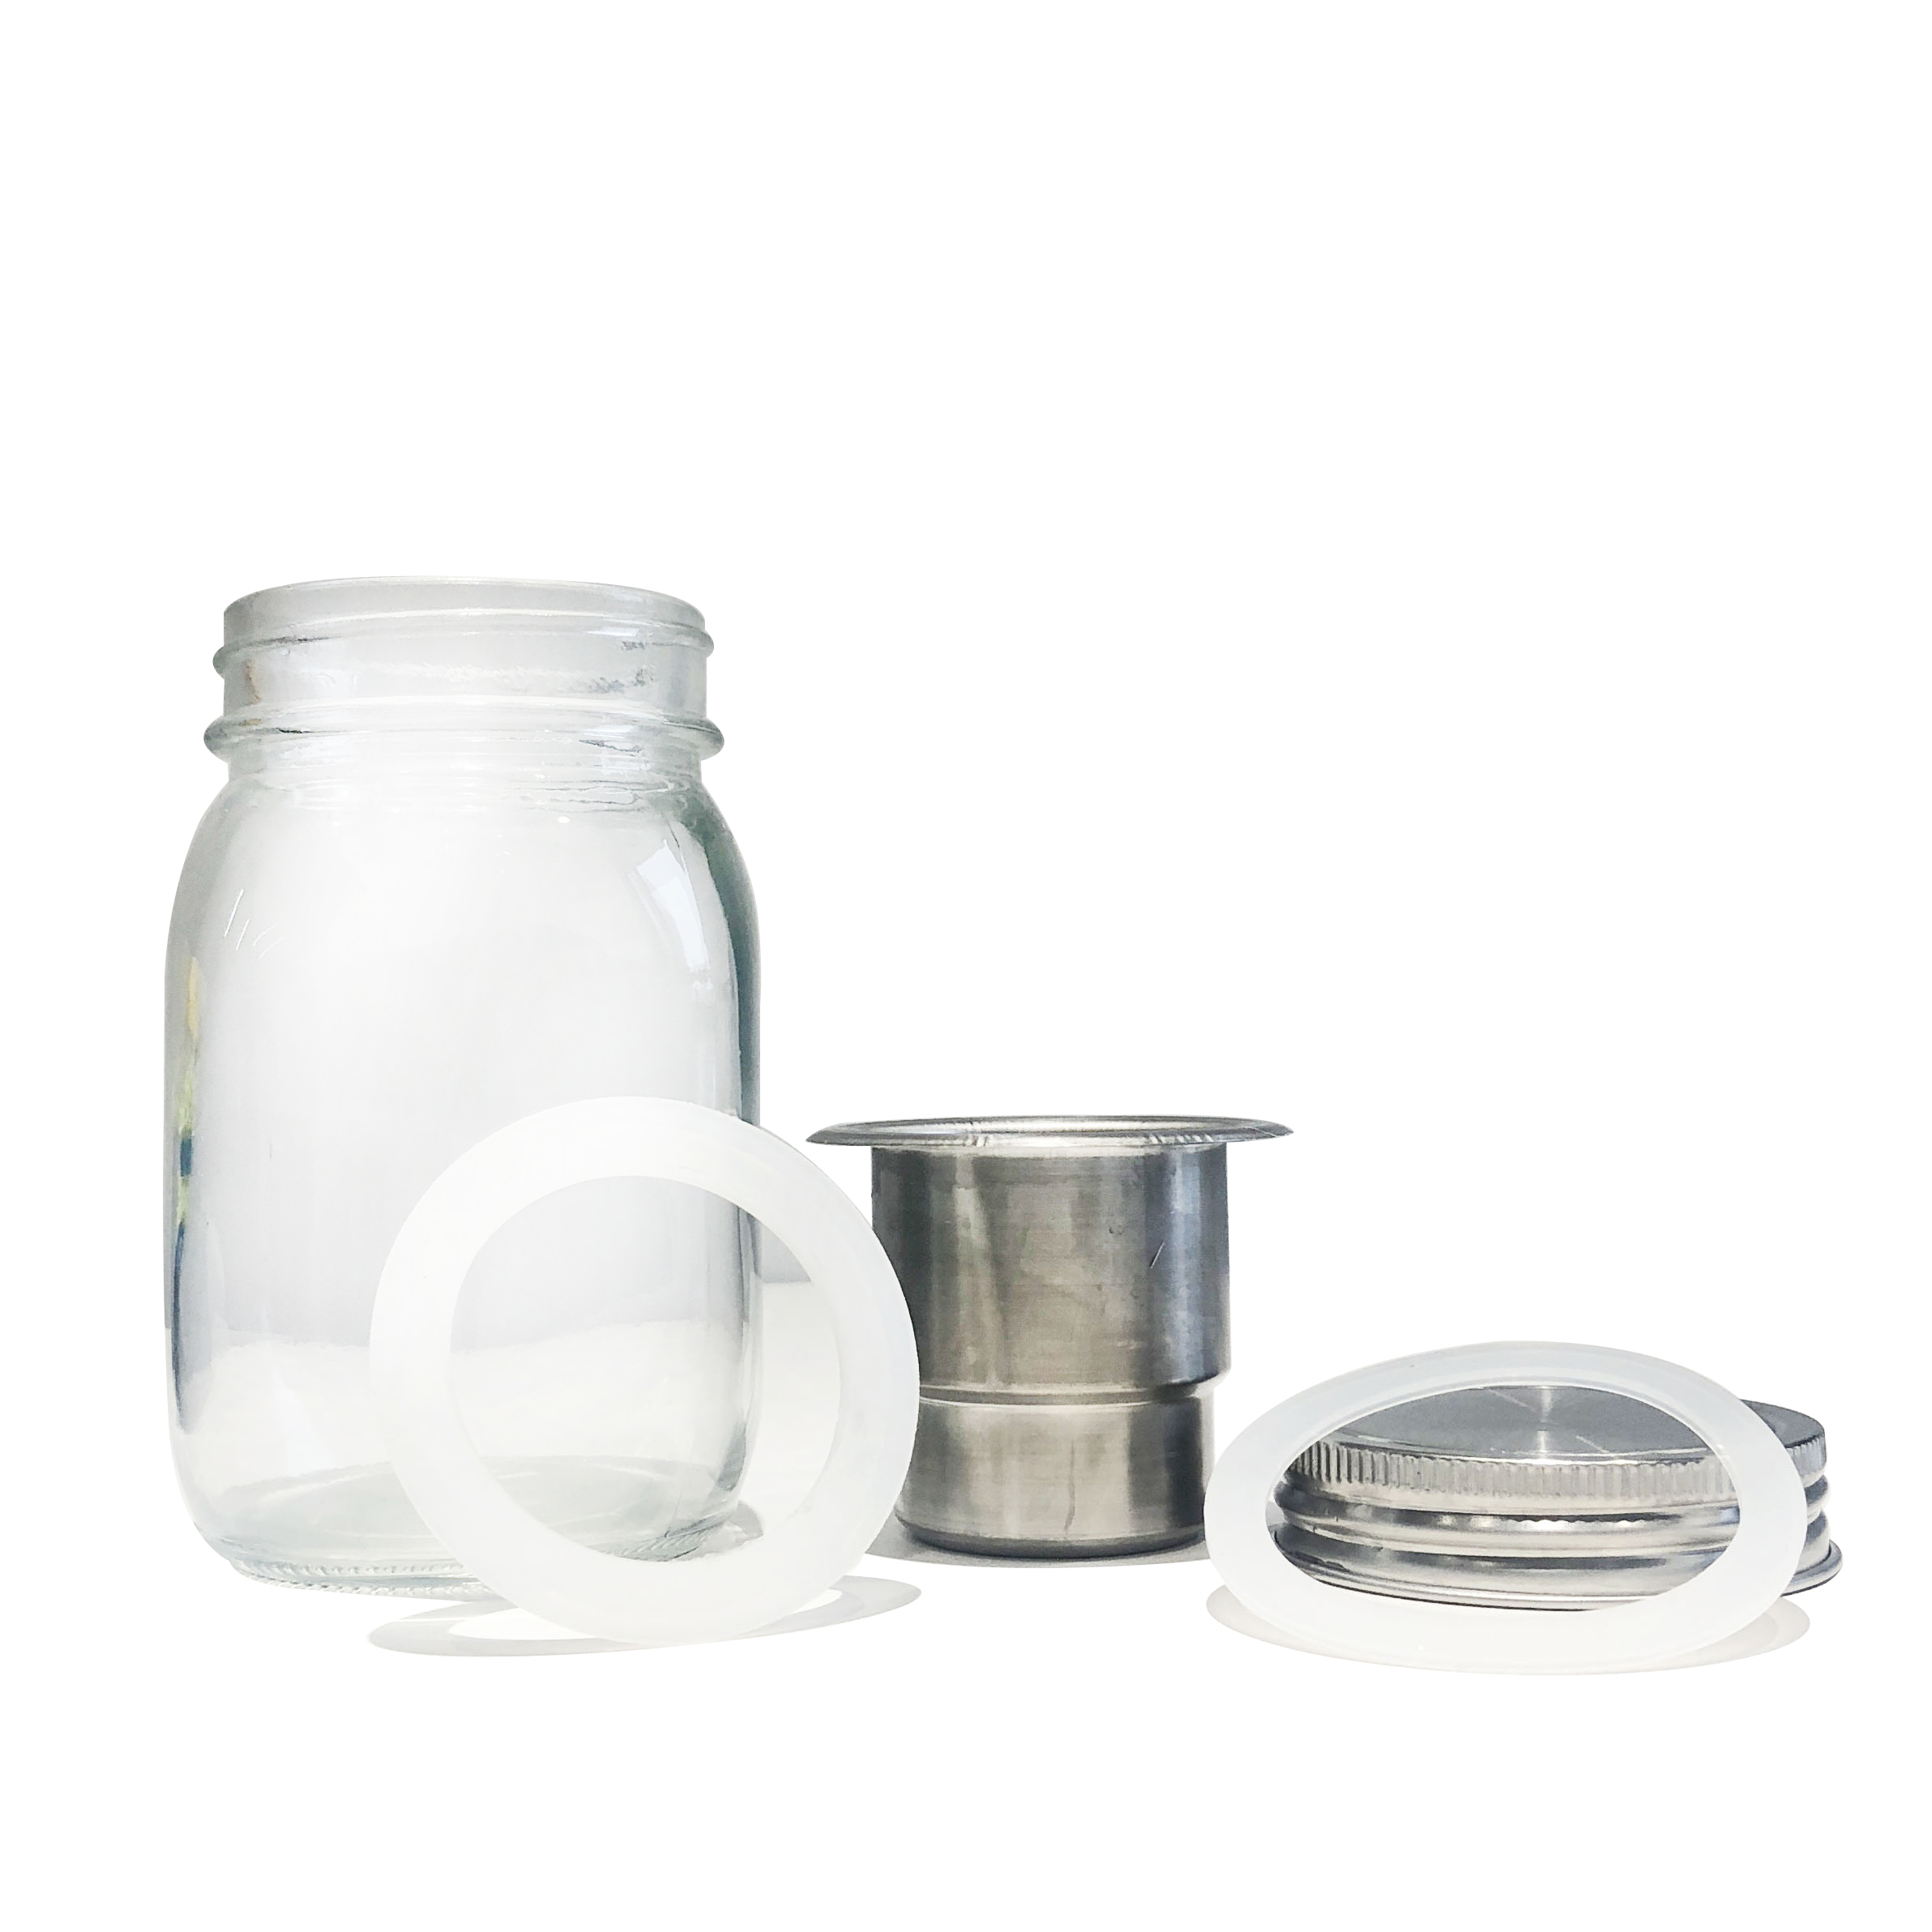 70mm Stainless Steel Glass Mason Jar Salad Lid for Regular Mouth Featured Image